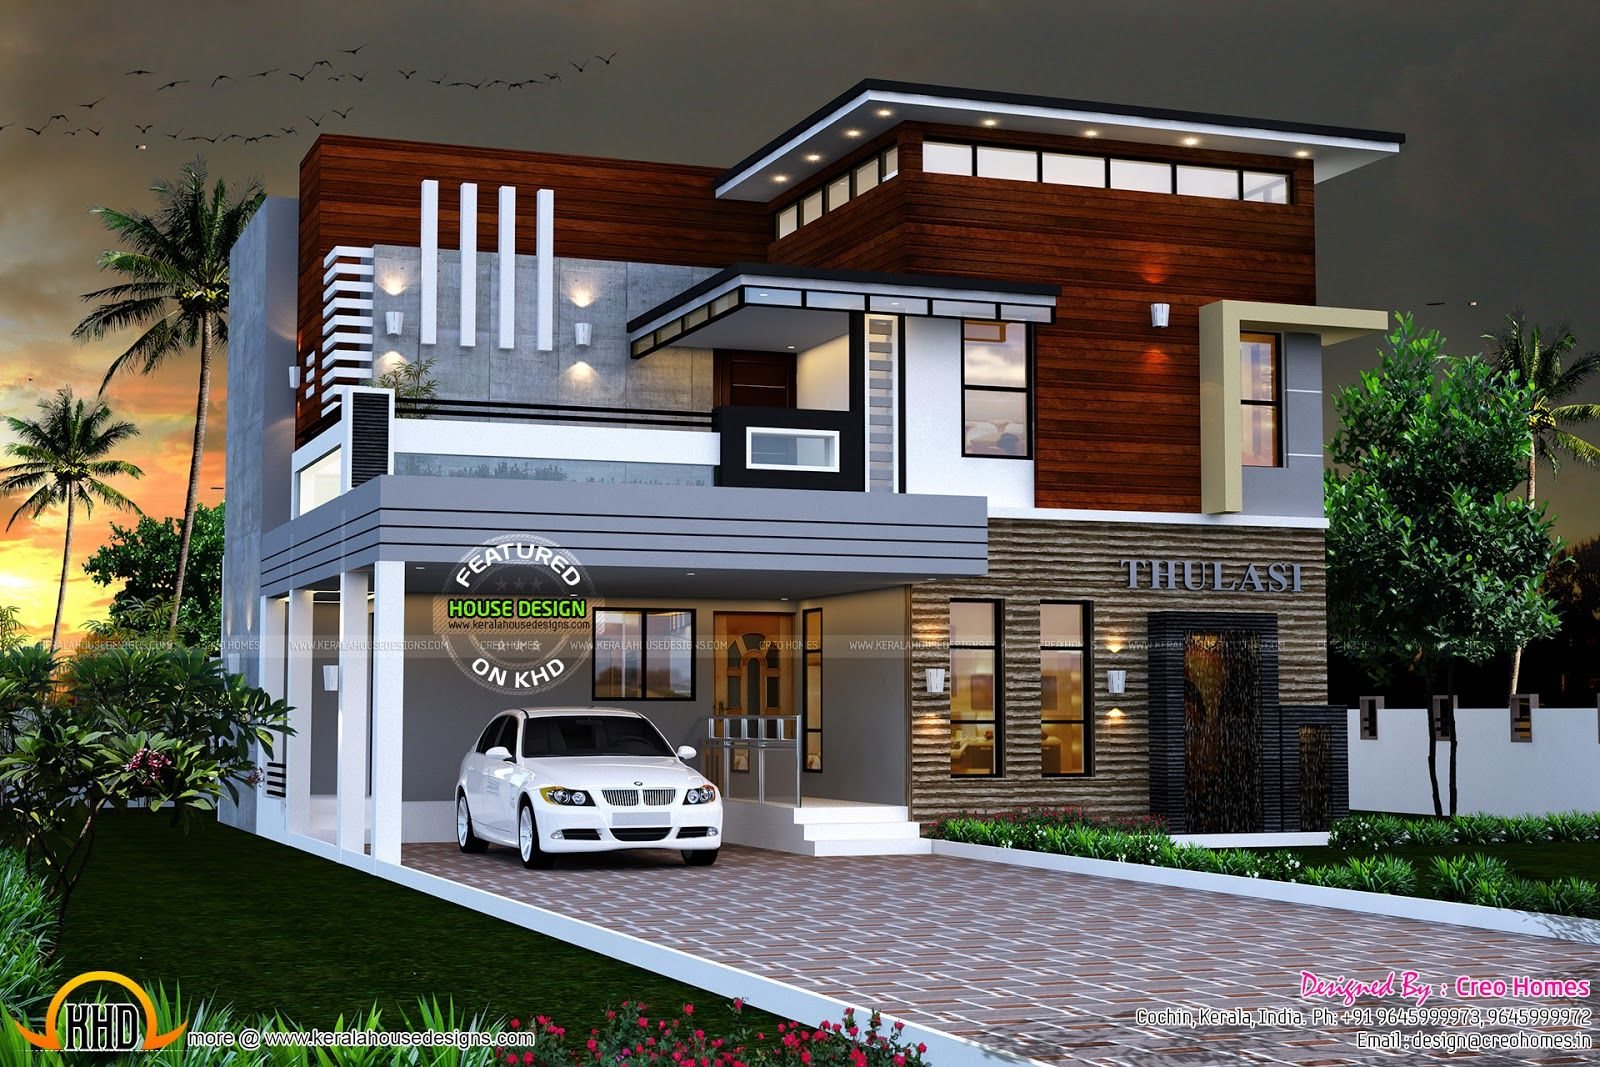 Eterior design modern small house architecture building for Modern tower house designs